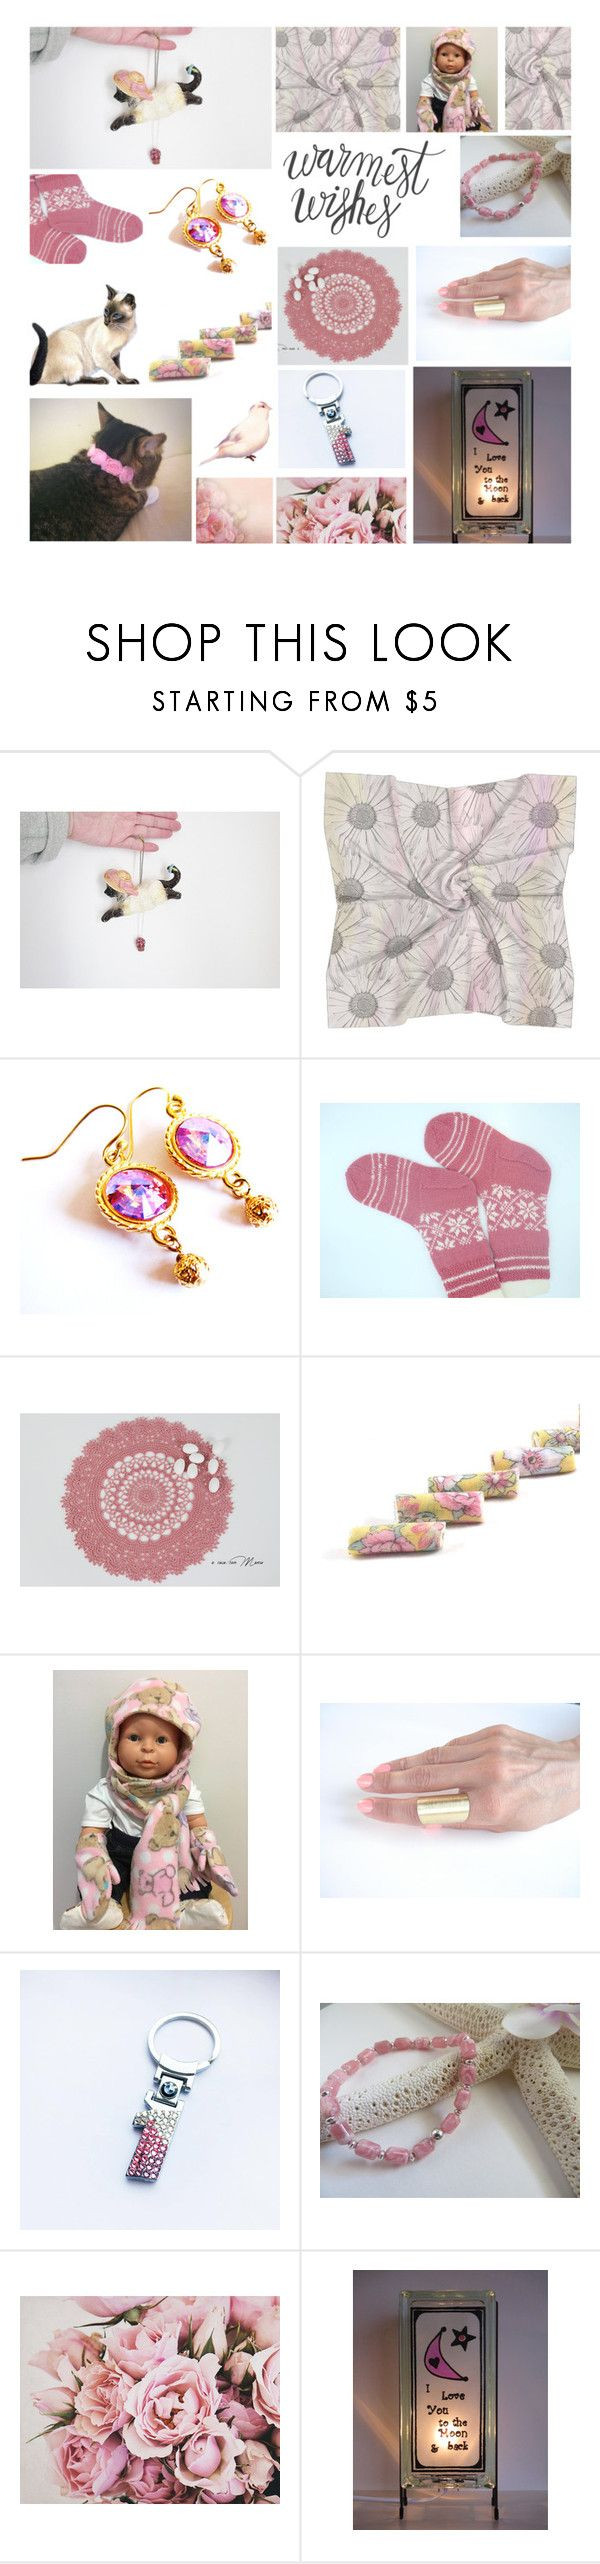 Warmest Wishes by jarmgirl on Polyvore featuring BMW